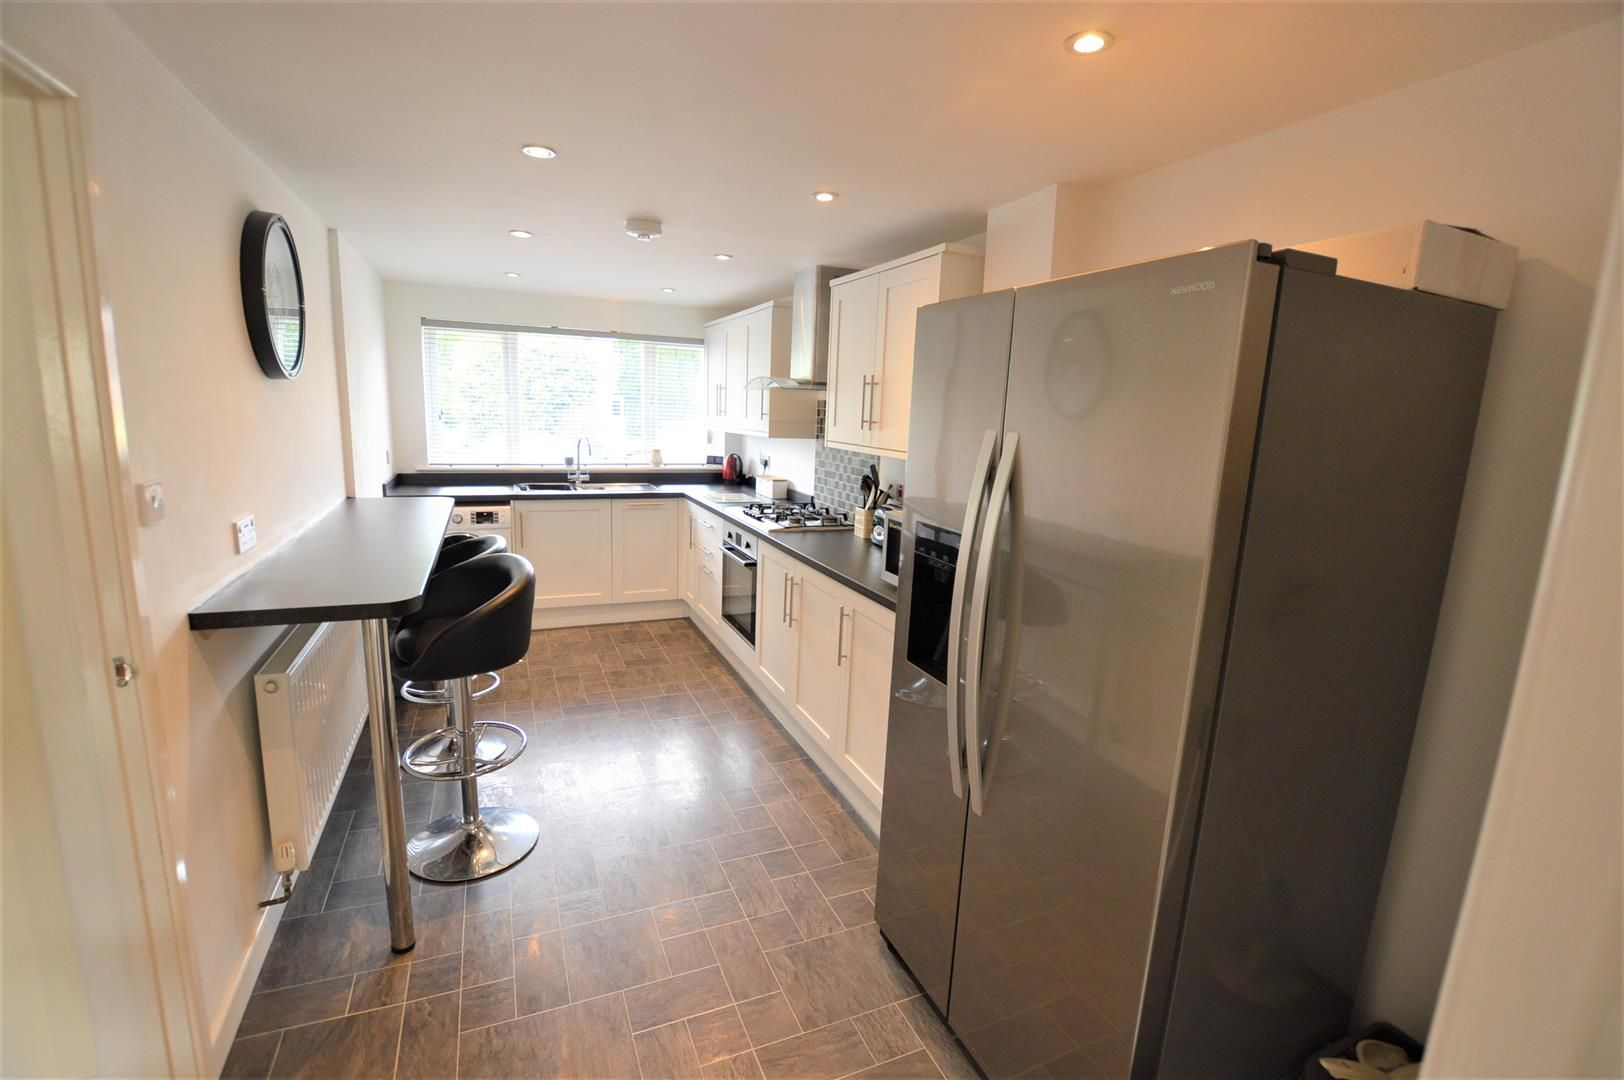 3 bed end-of-terrace for sale in Leominster 4